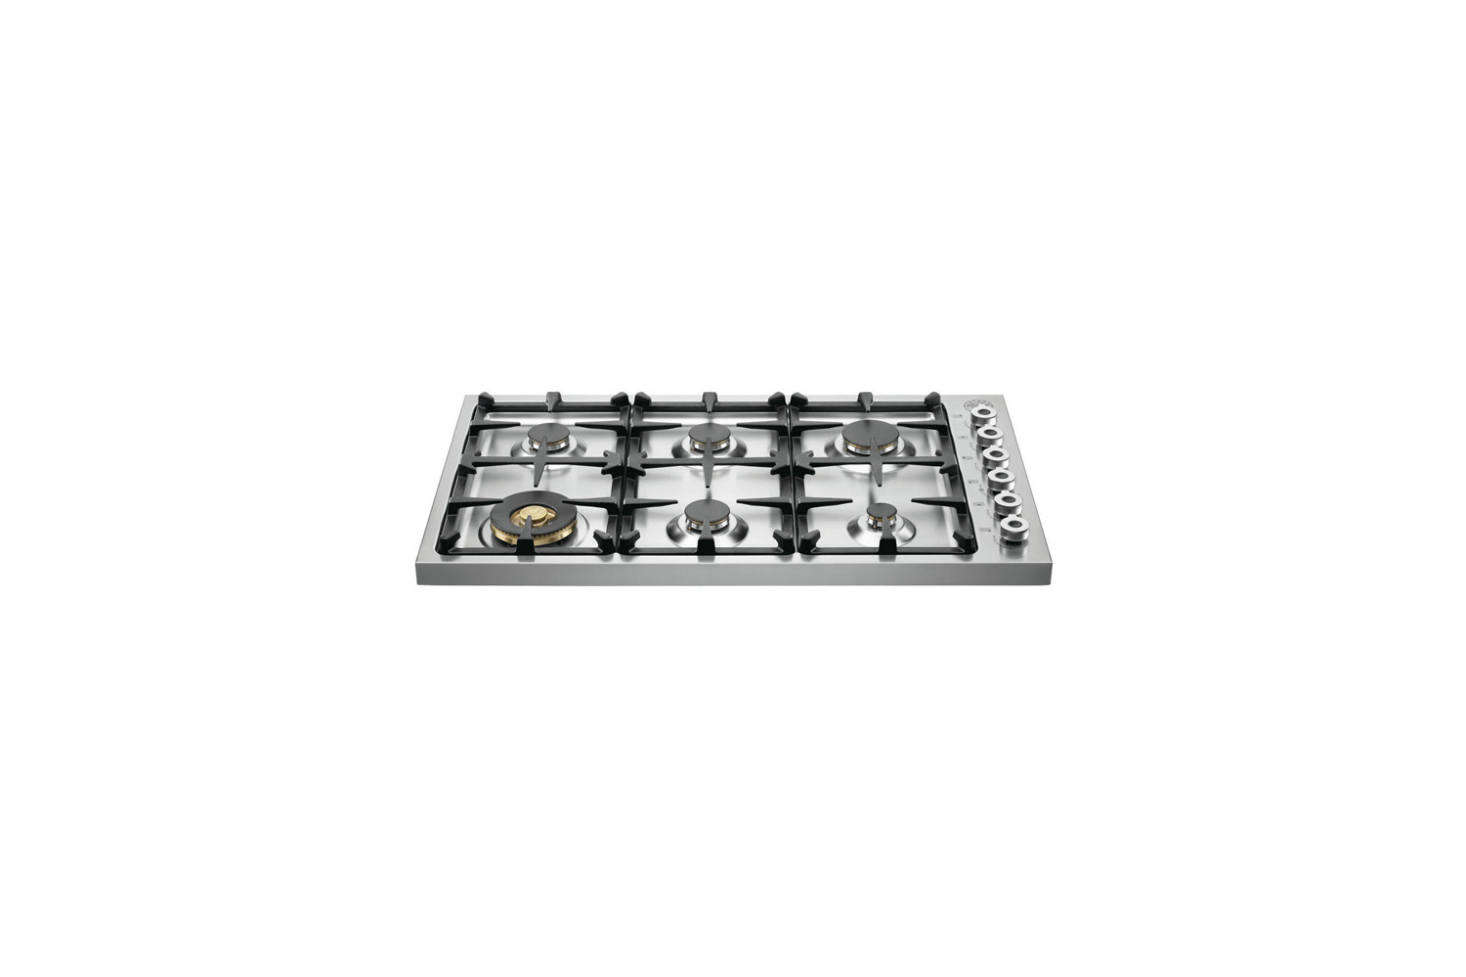 The island cooktop is a Bertazzoni Professional 36-Inch Drop-In Gas Cooktop (DB36600X); $src=